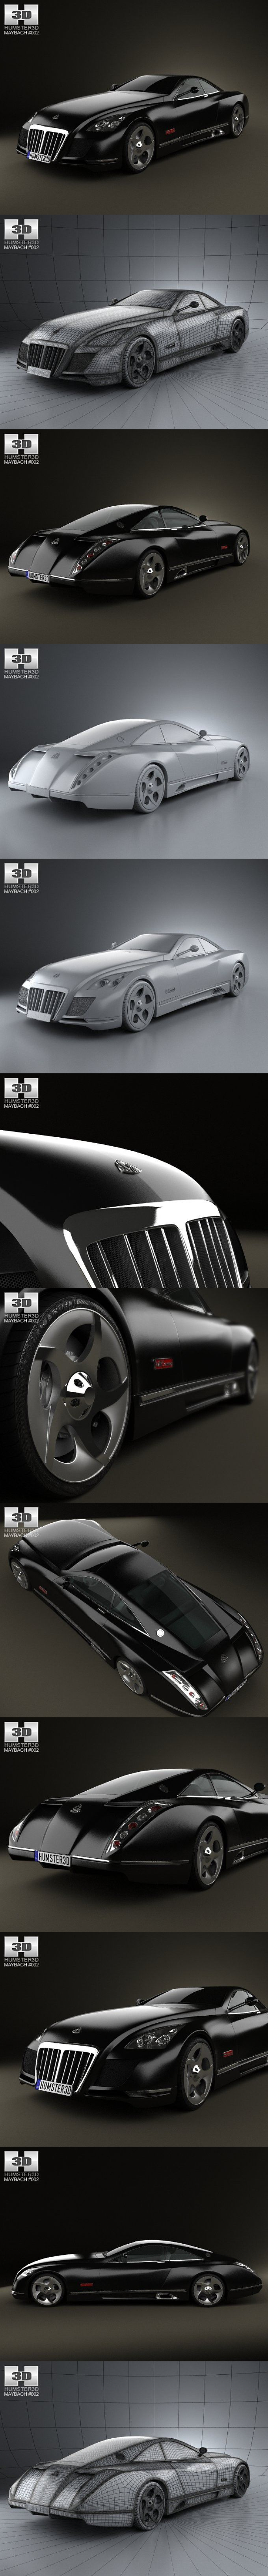 Maybach Exelero 2005. 3D Vehicles